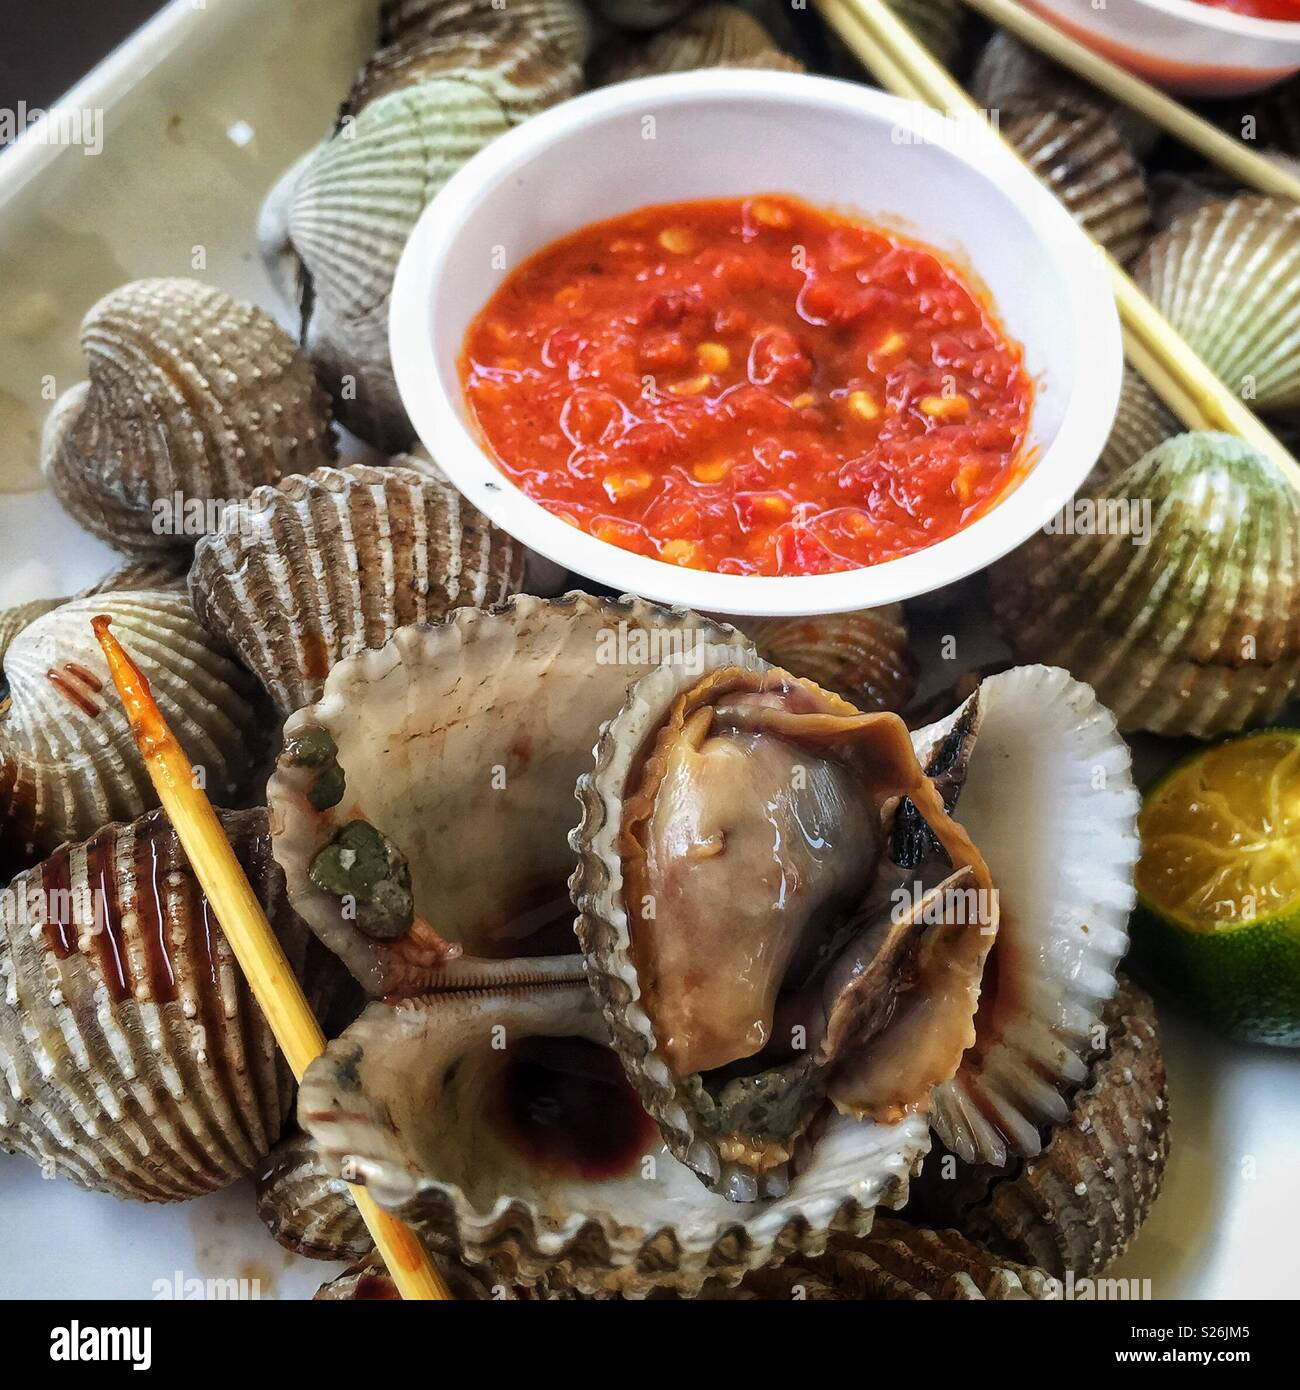 Muscheln und Chili Sauce bei East Coast Lagoon Food Village, eine Hawker Food Markt in Singapur Stockbild